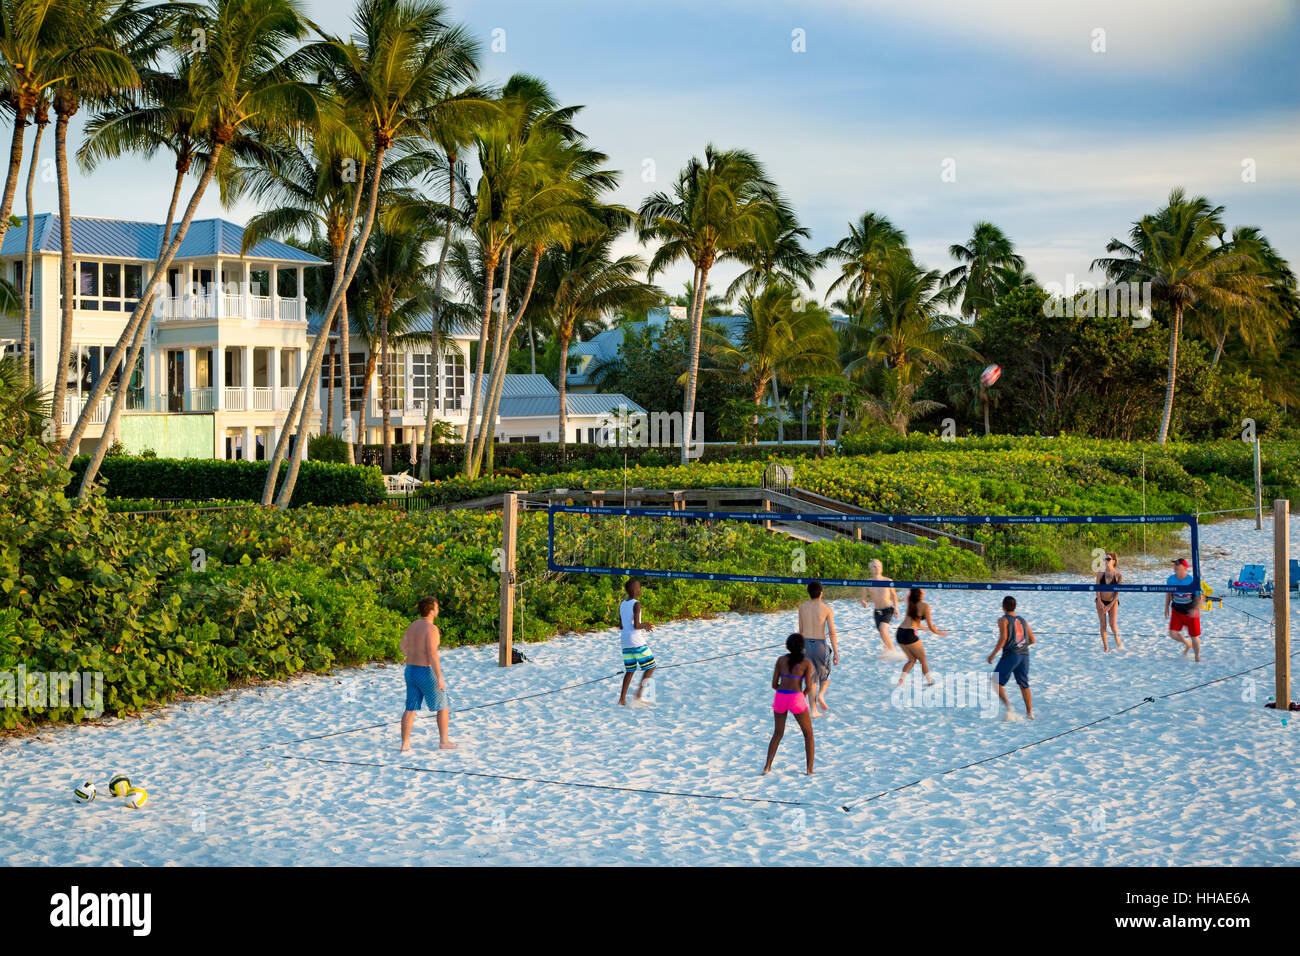 Volley-ball sur la plage de Naples, Floride, USA Photo Stock